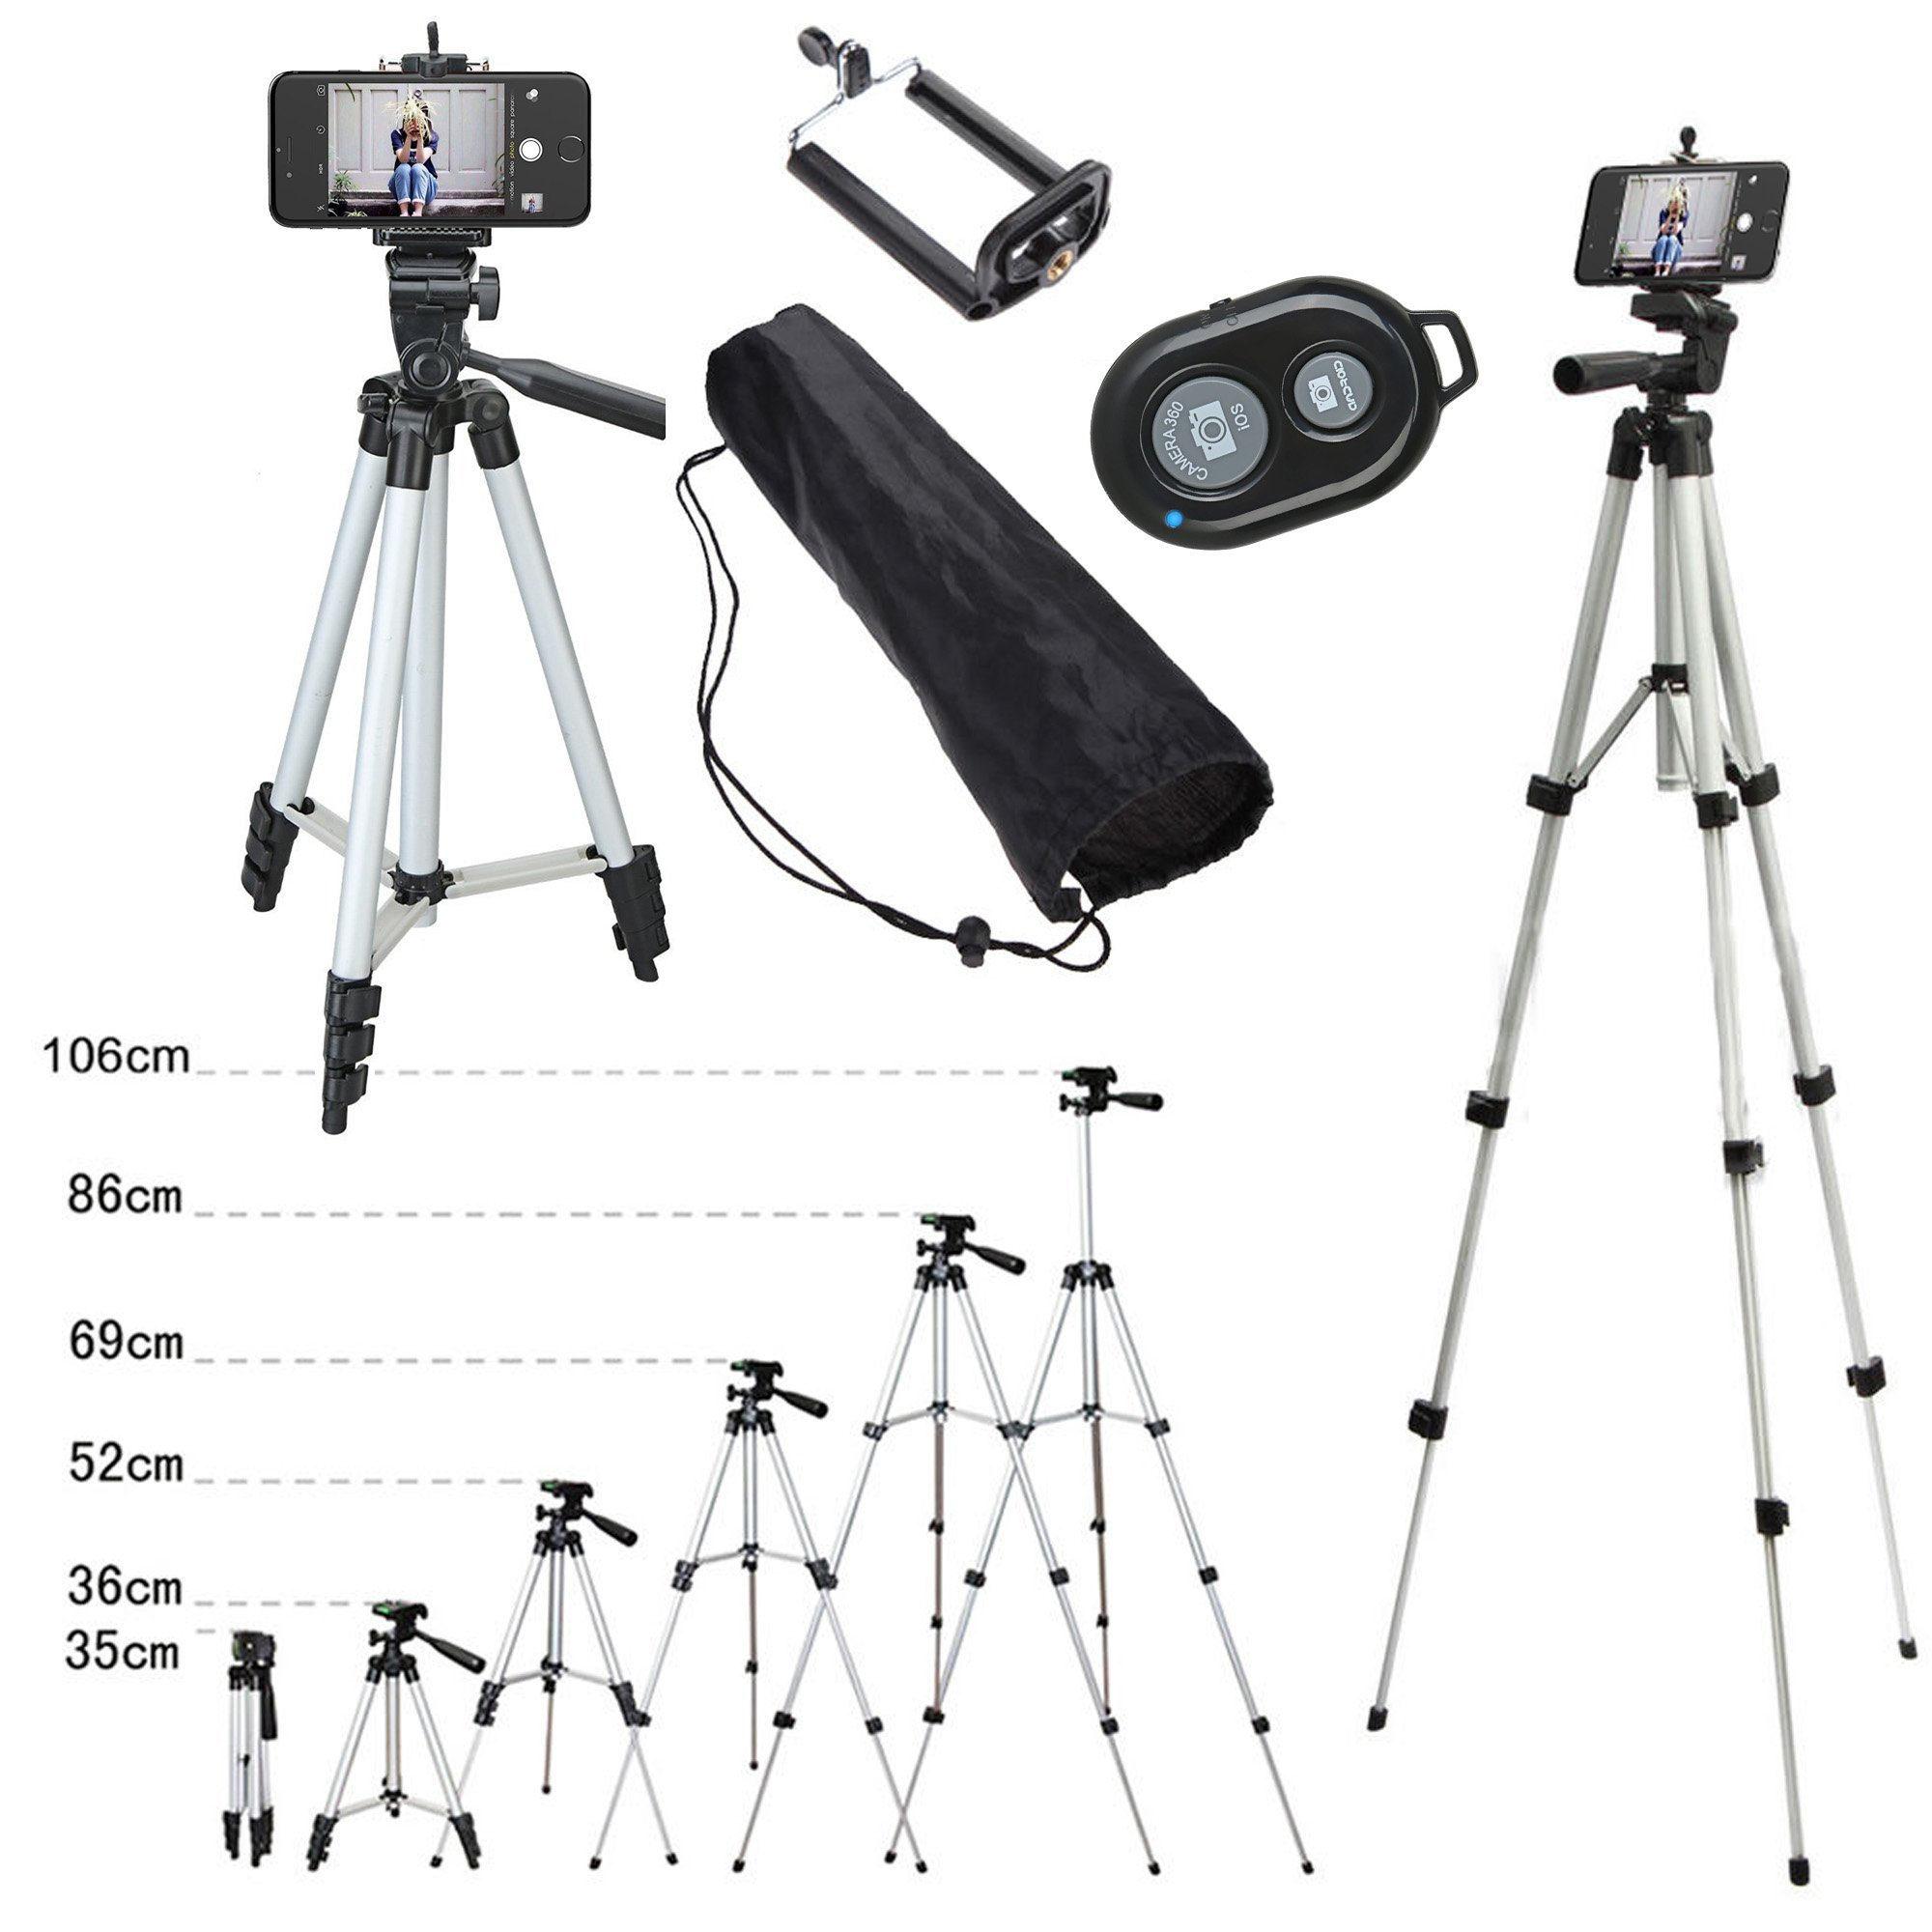 110cm Remote Controller Shutter + Portable Camera Tripod Stand Holder Adjustable Rotatable Retractable Aluminum Tripods Smartphones Mount for iPhone X 8 7 7 6s 6 Plus Samsung S7 S8 LG G6 V20 Moblie